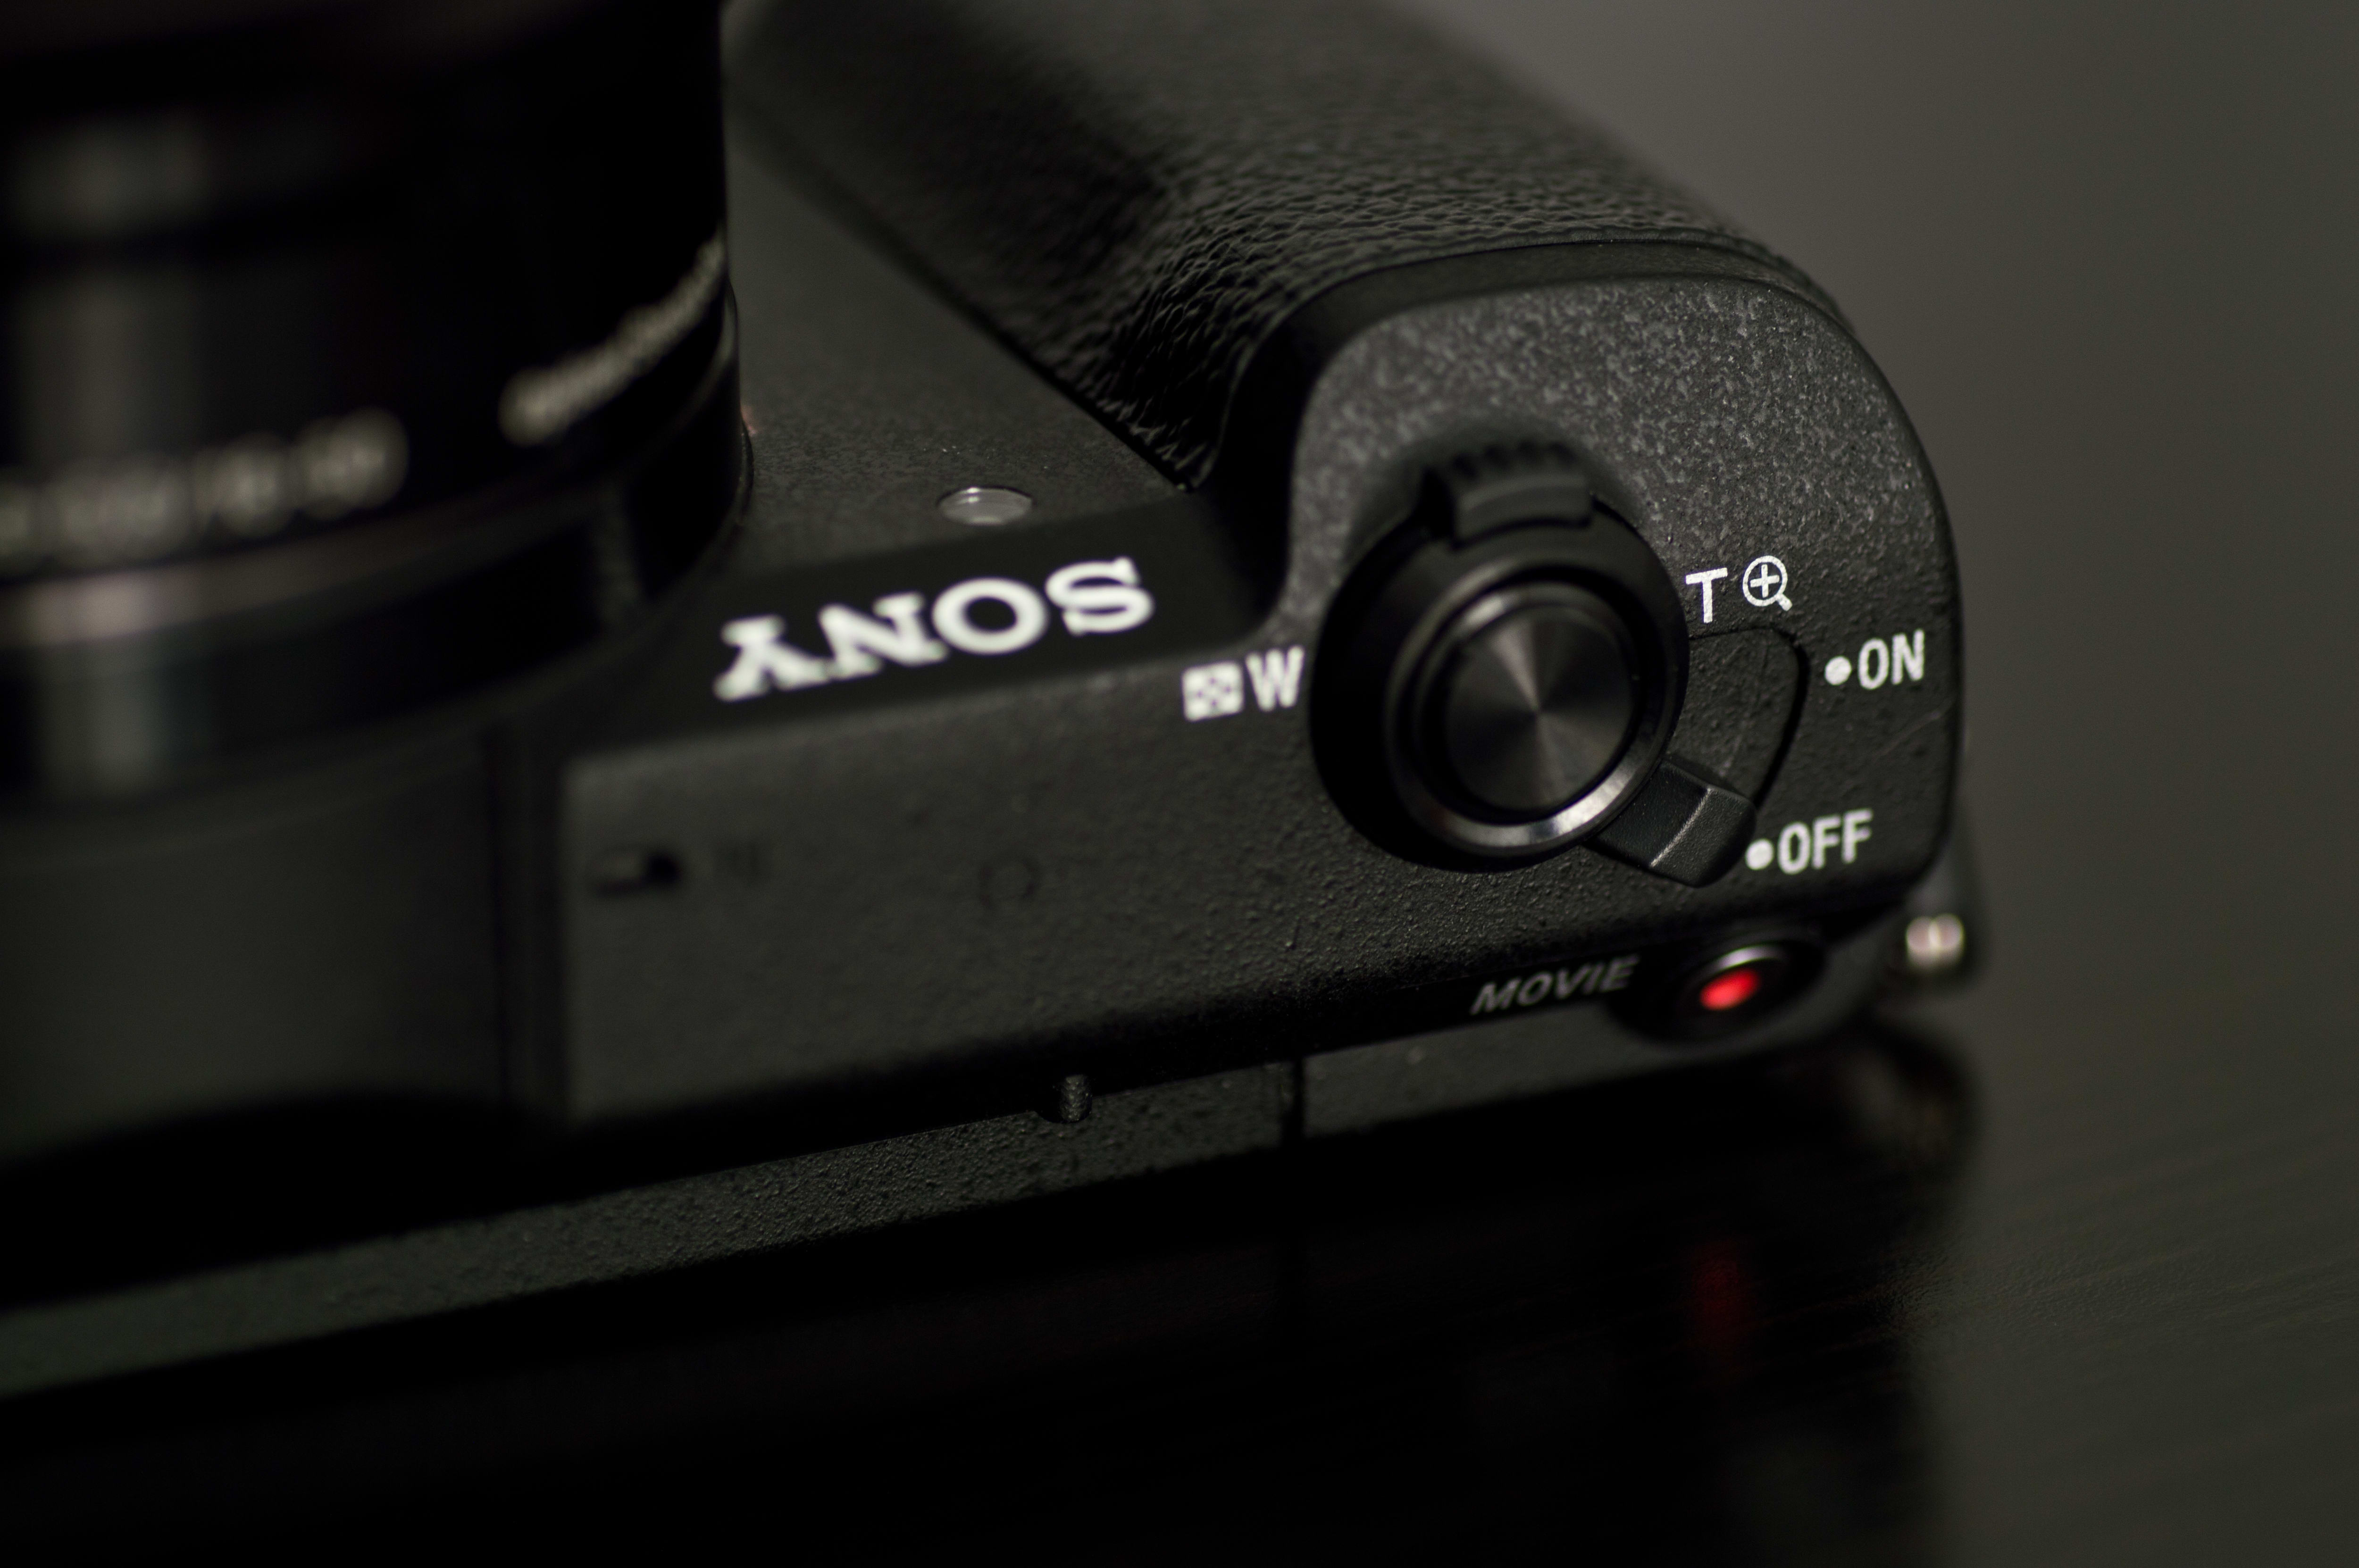 A shot of the shutter release and top controls on the A5100.